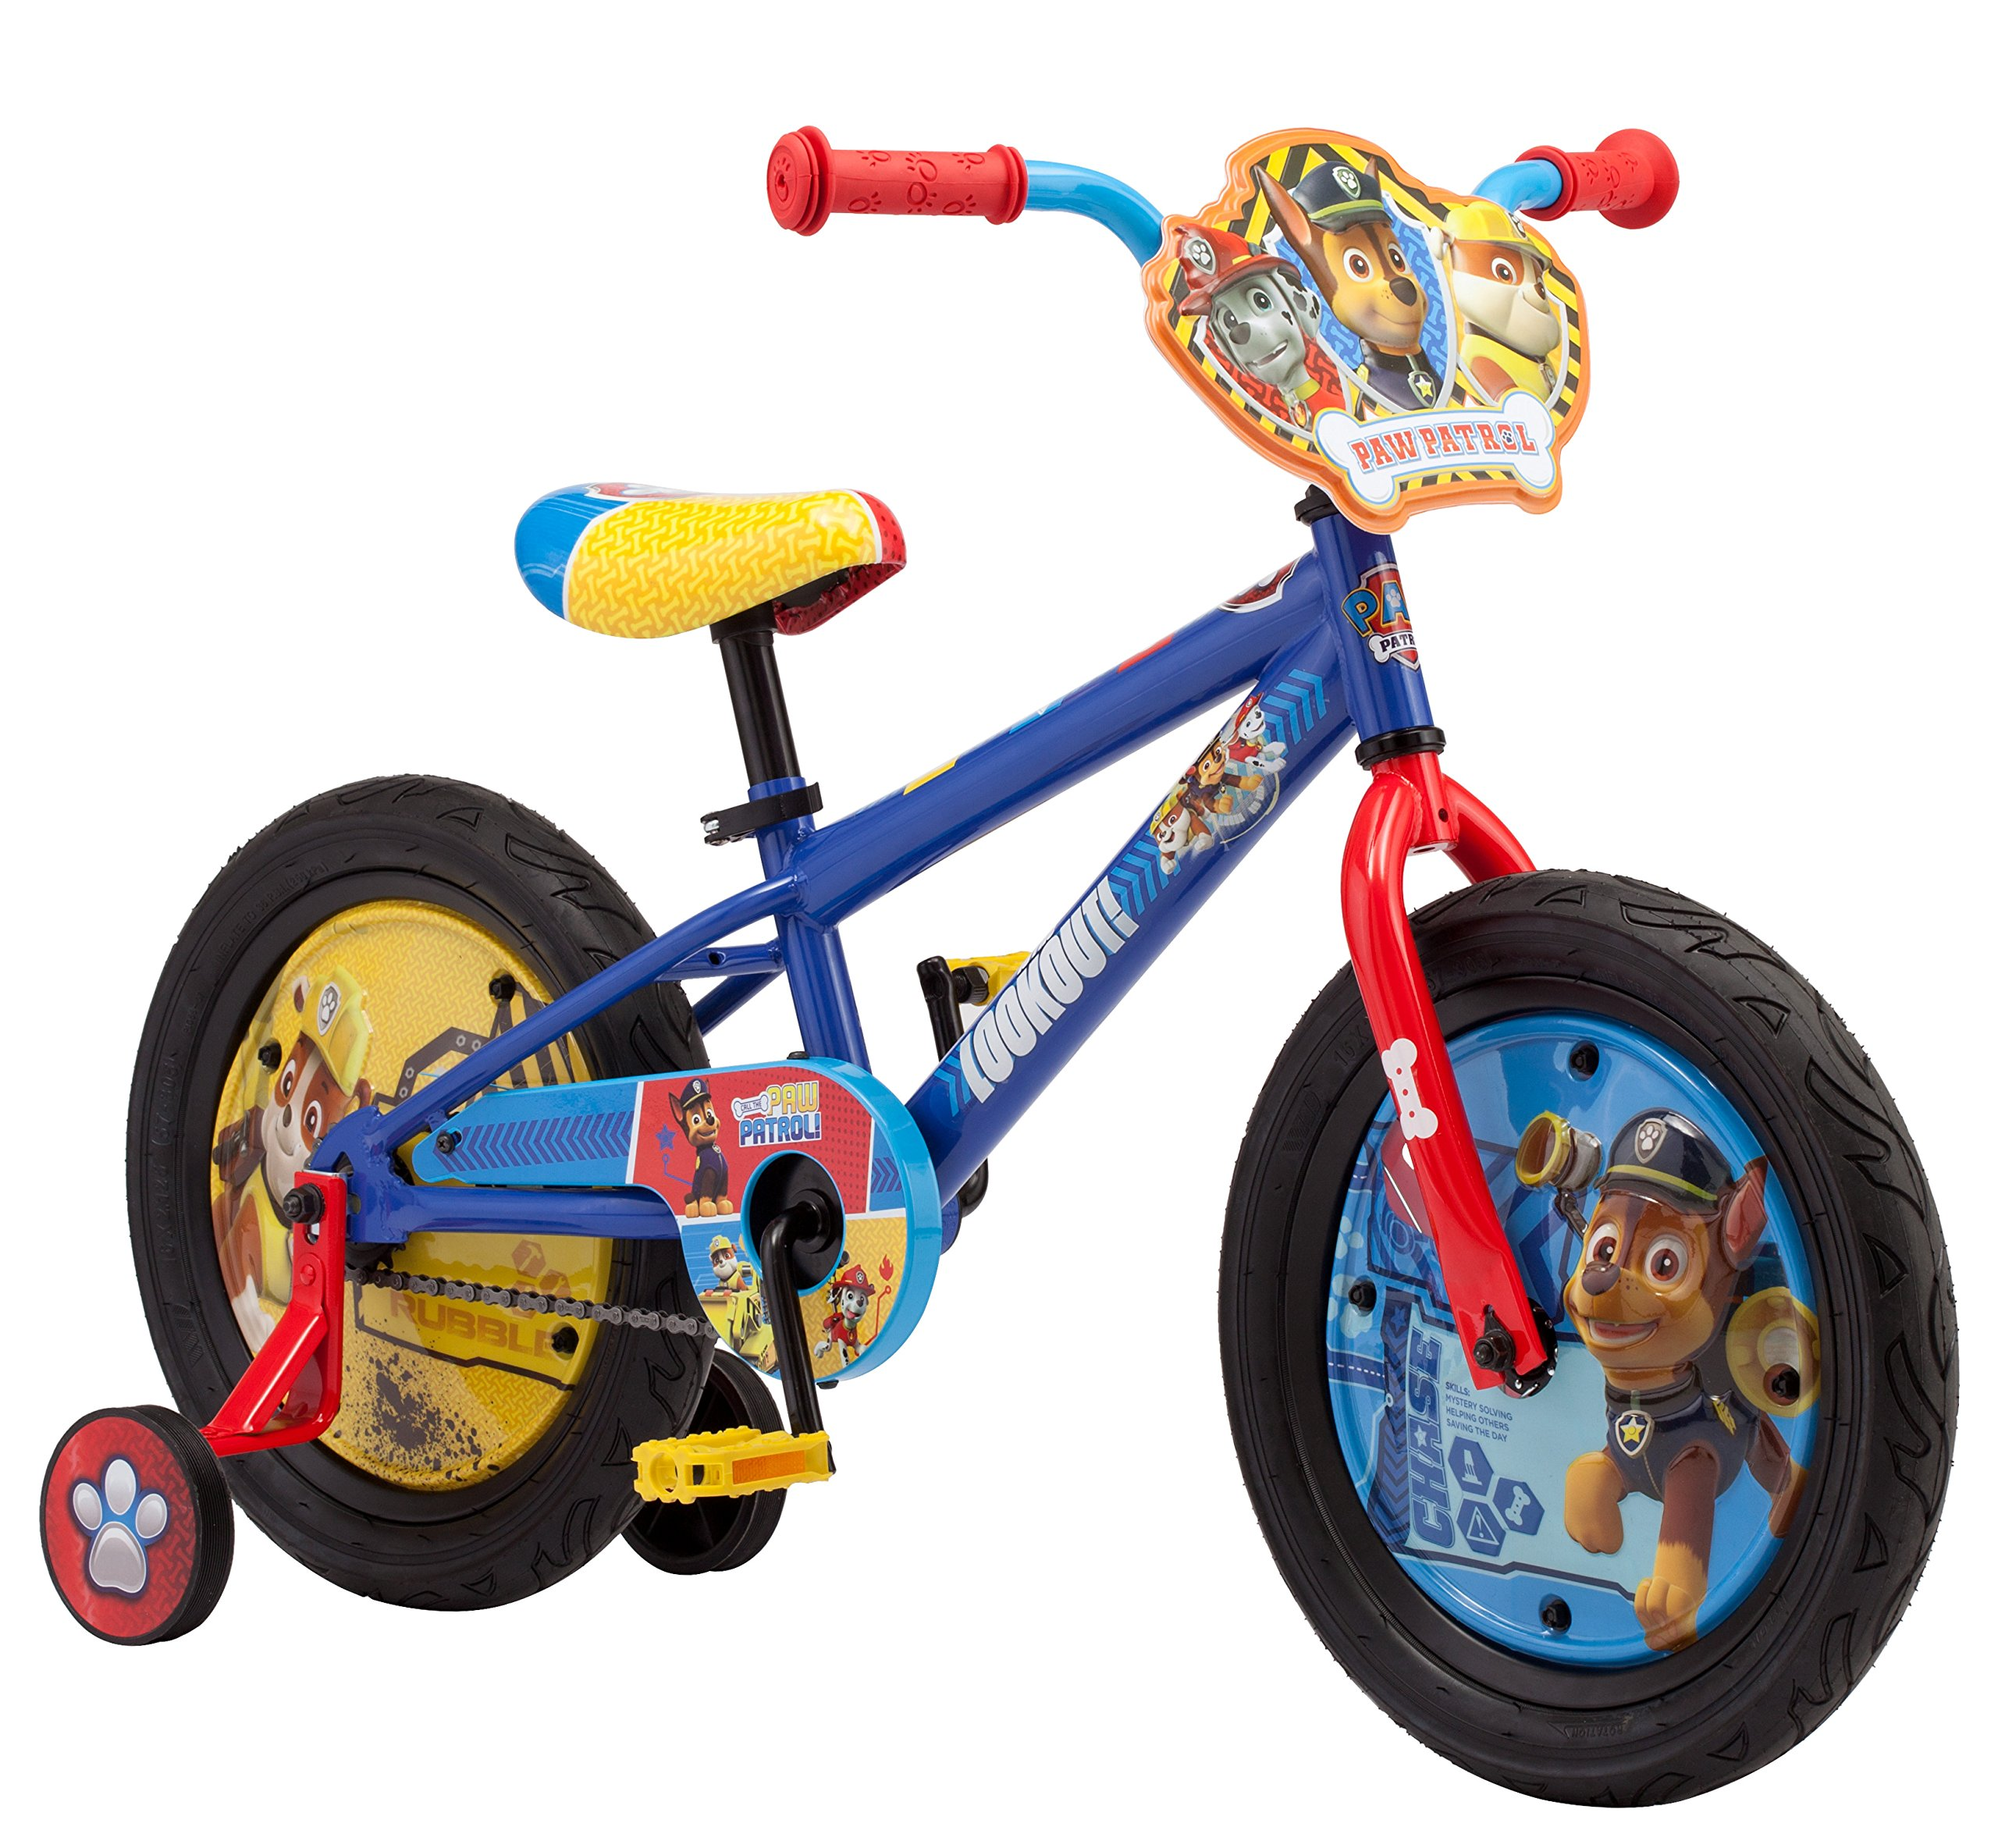 Nickelodeon Paw Patrol Boy' Bicycle, Blue, 16''